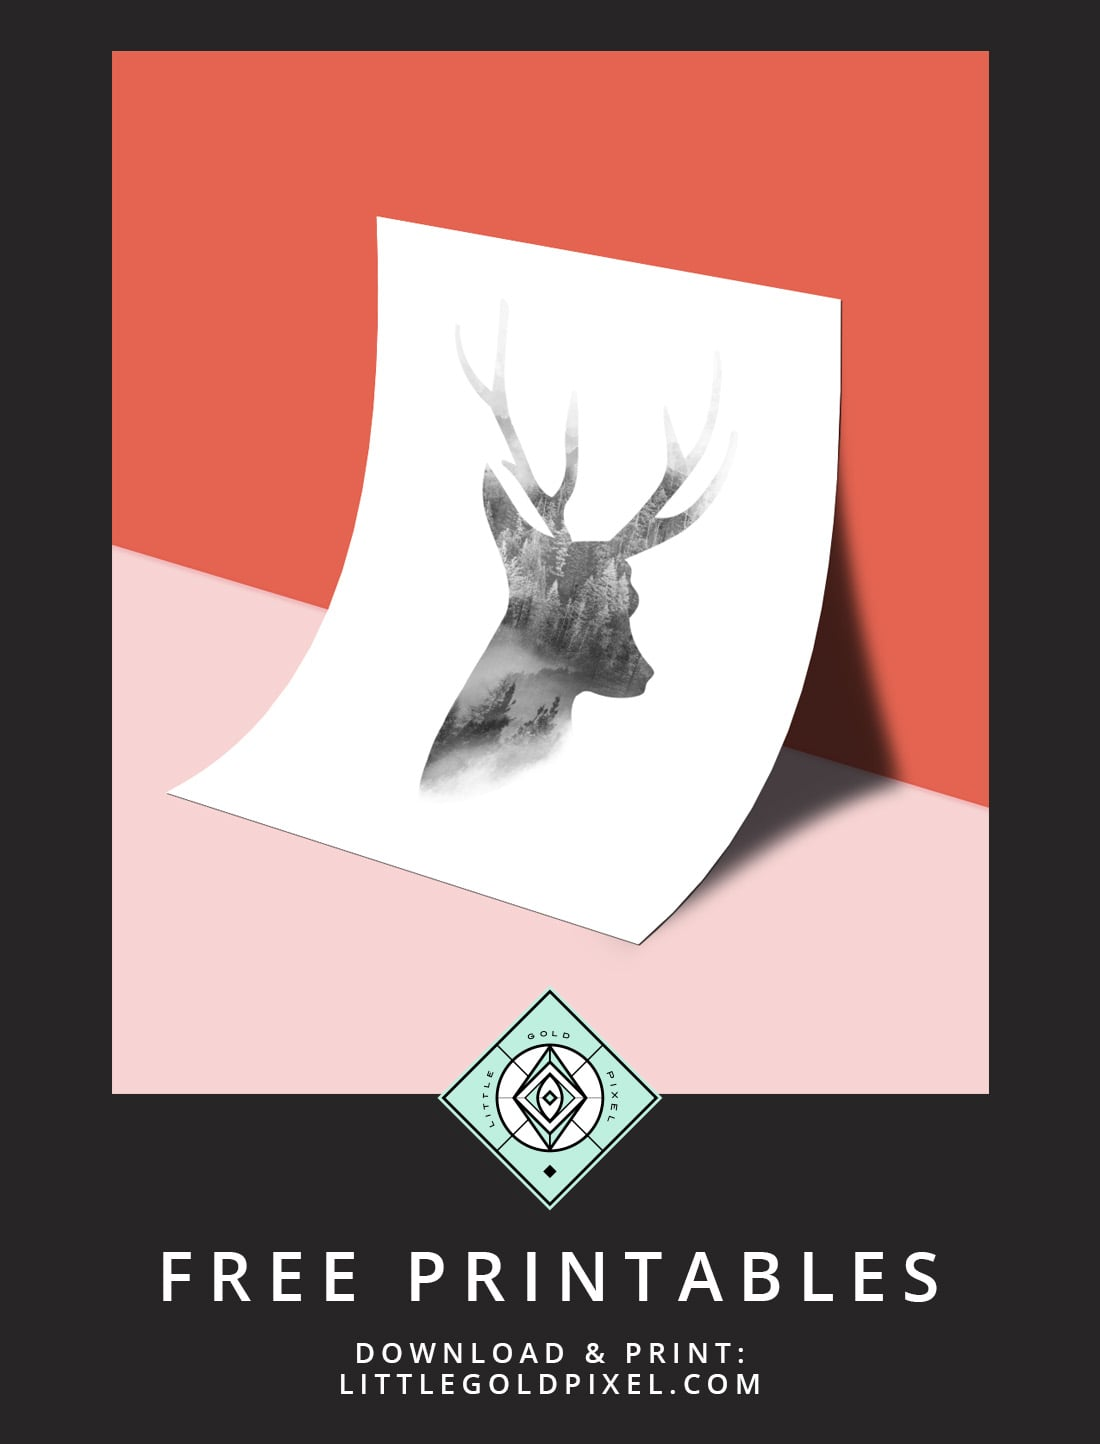 Download this free deer wall art printable as part of my Freebie Friday series. Minimalist & farmhouse. Print & hang today!